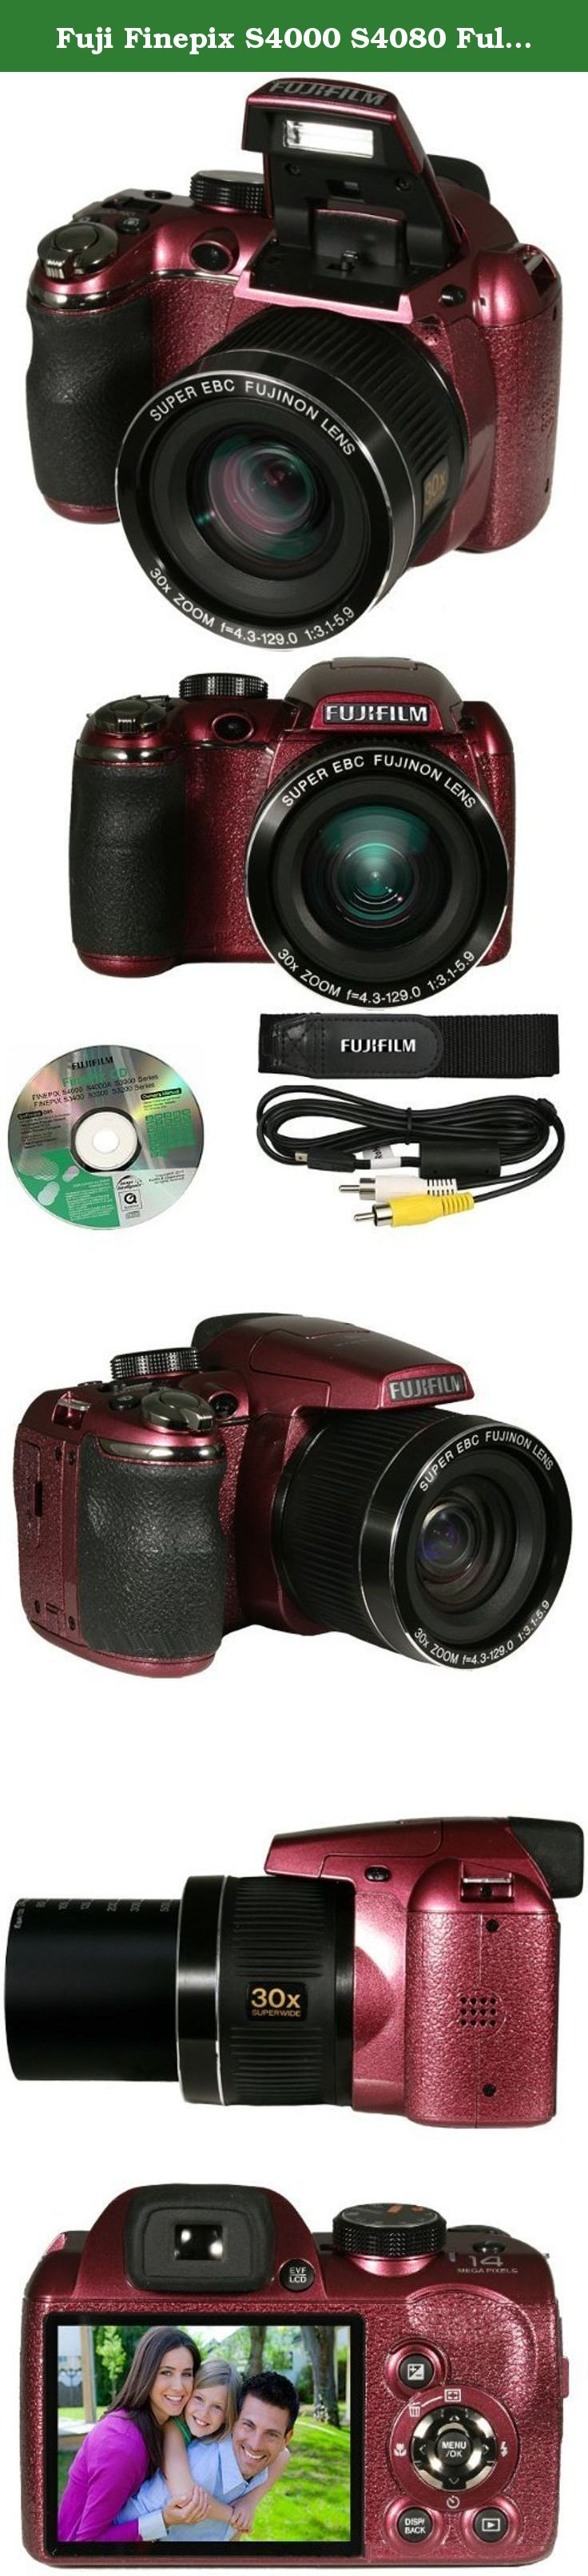 """Fuji Finepix S4000 S4080 Full 720p HD 14MP Digital Camera w/ 30x Optical Zoom, 3"""" TFT LCD (Plum). Highly Regarded by Professionals World-wide The widely renown Fujinon Lenses are used popularly in numerous situations including satellites in outer space, TV/film, surveillance, and compact cameras. With the highly adept manufacture of Fujifilm, high precision optic and technology are provided for the best 24mm wide angle and 30x optical zoom. - 24mm Wide Angle 14 Megapixels - With Vivid…"""